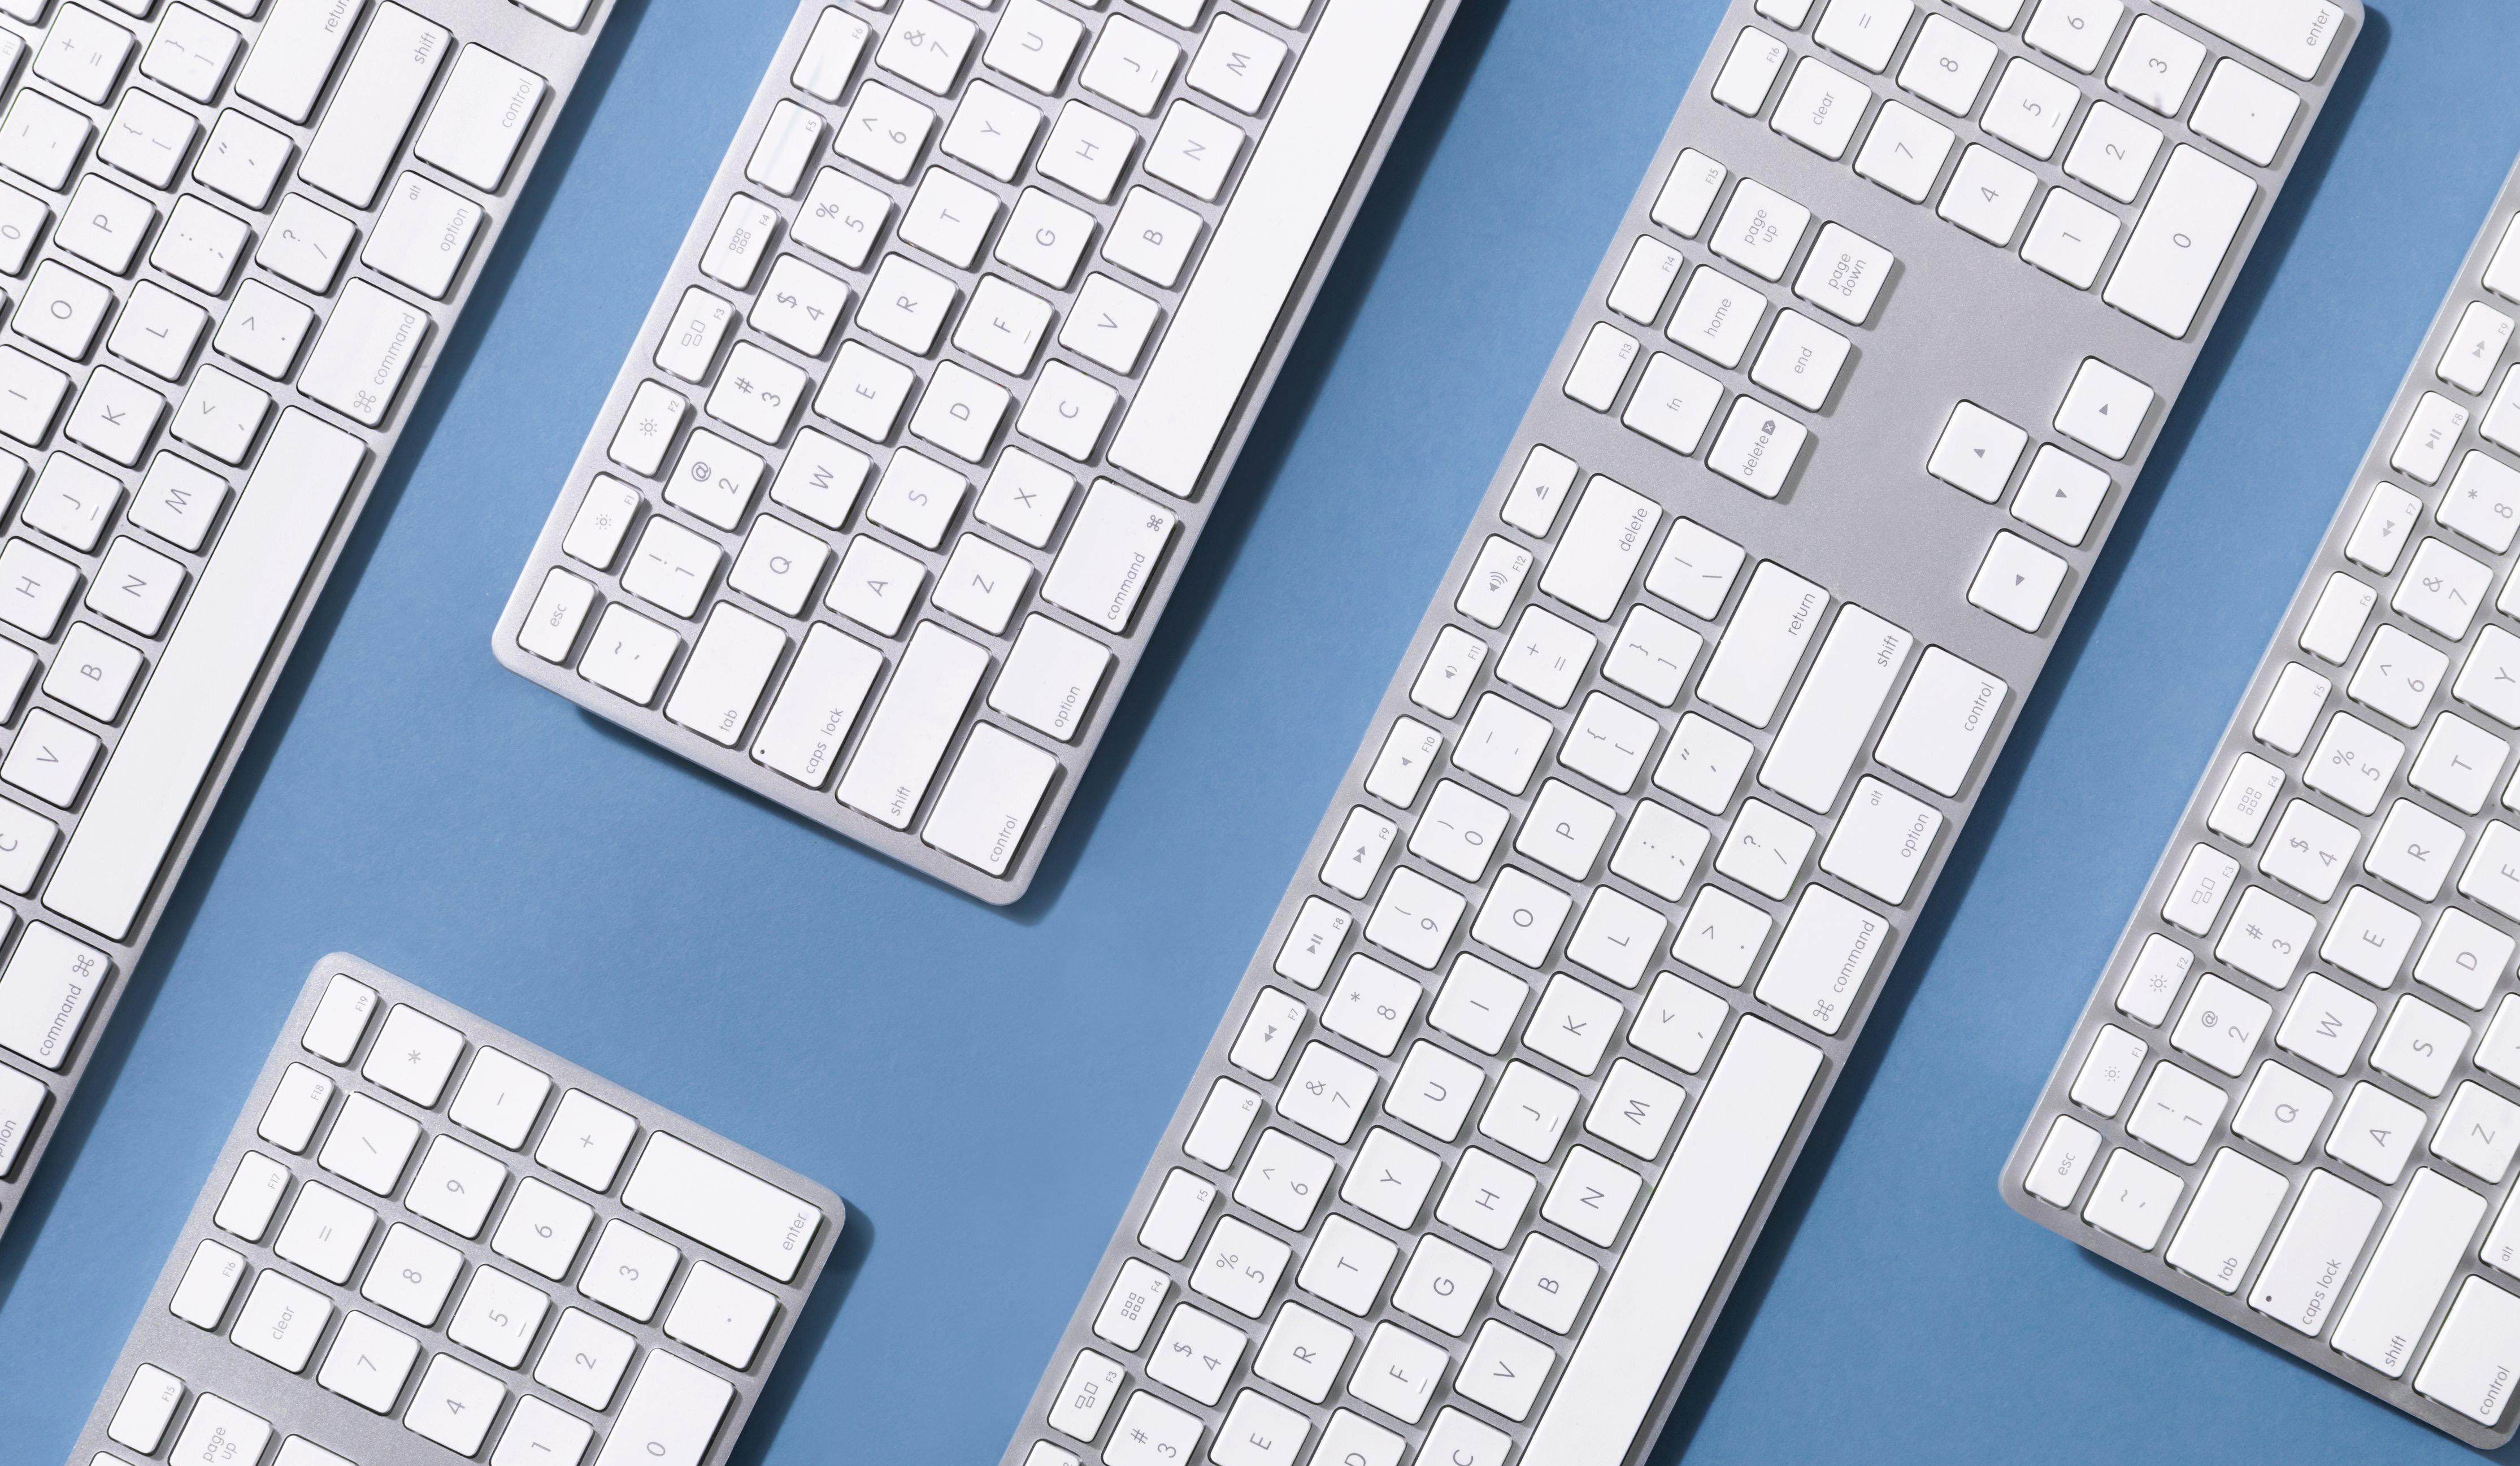 cropped_keyboards-on-blue-surface